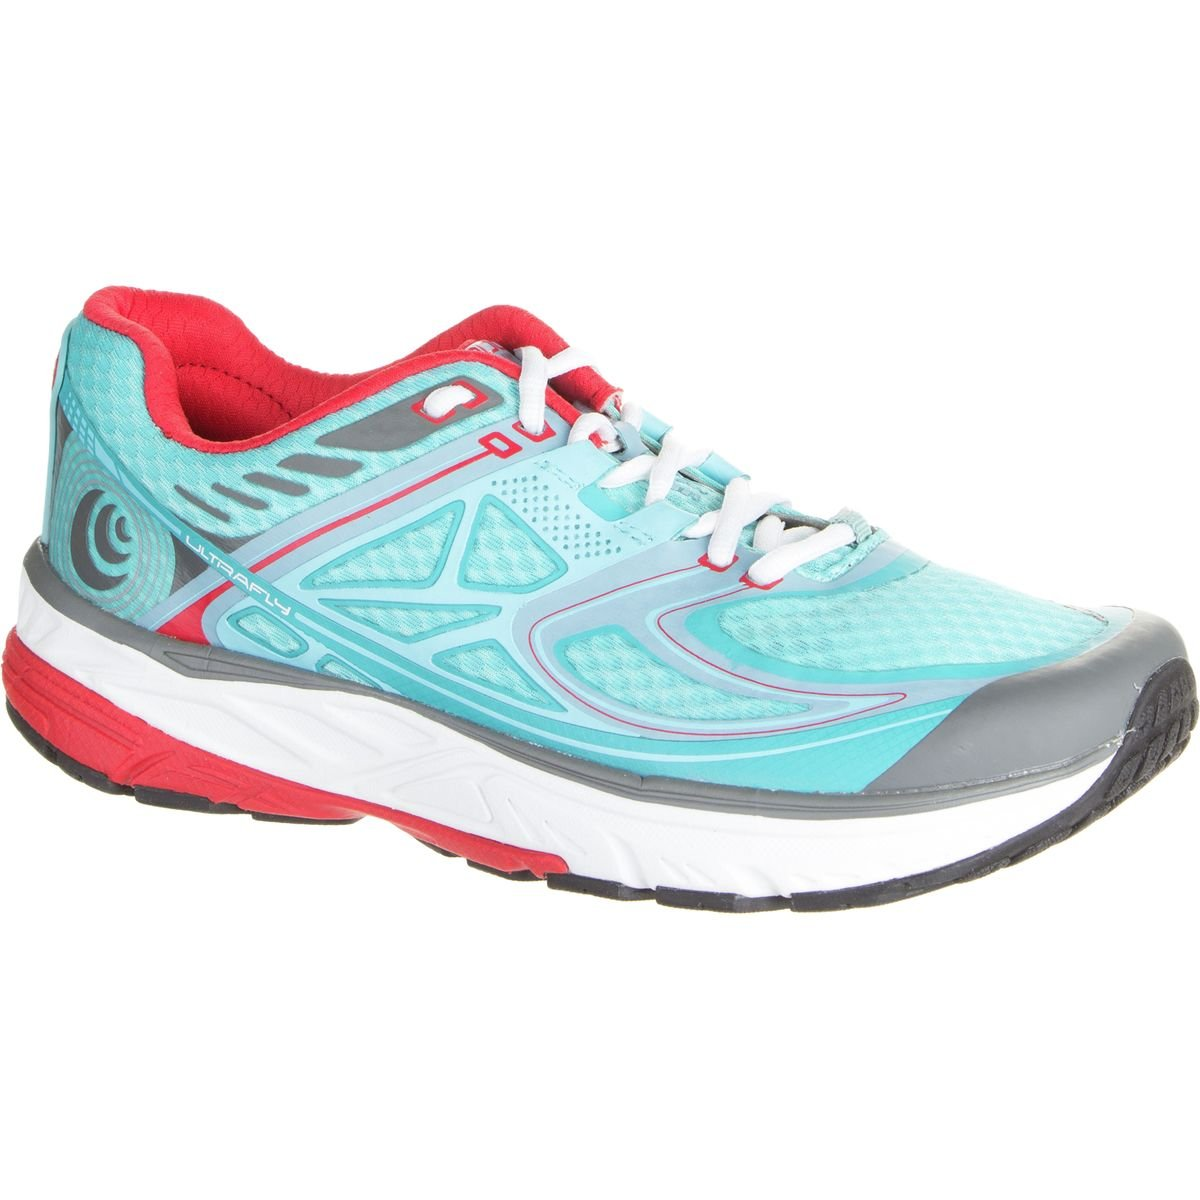 Topo Athletic Ultrafly Running Shoe - Women's B01FG8MW7Y 9.5 B(M) US|Ice/Red